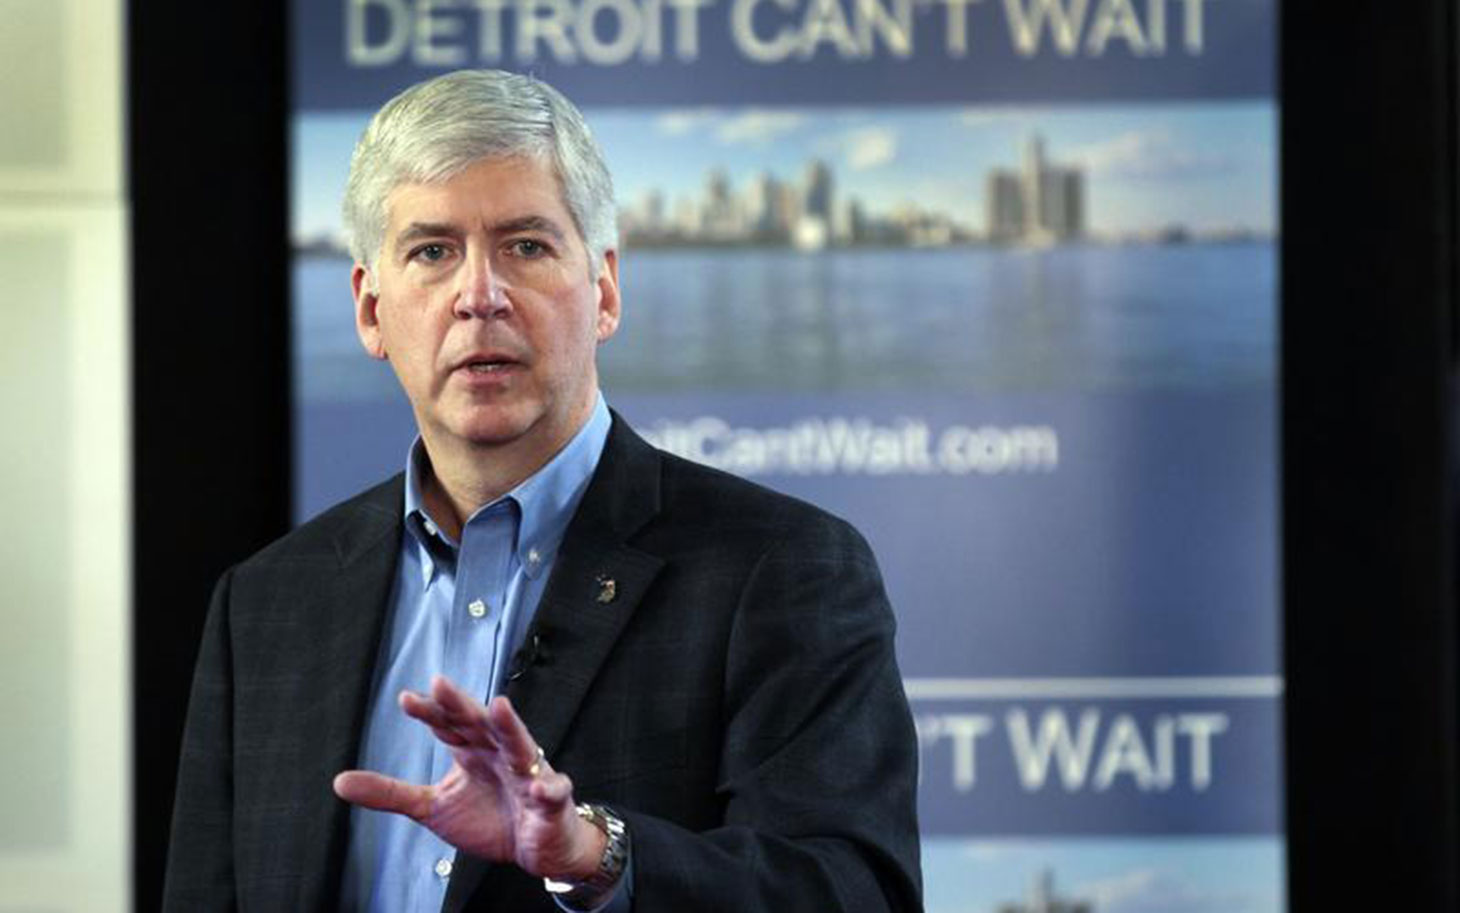 Michigan Governor Rick Snyder is trying to consolidate control over Detroit's charters.